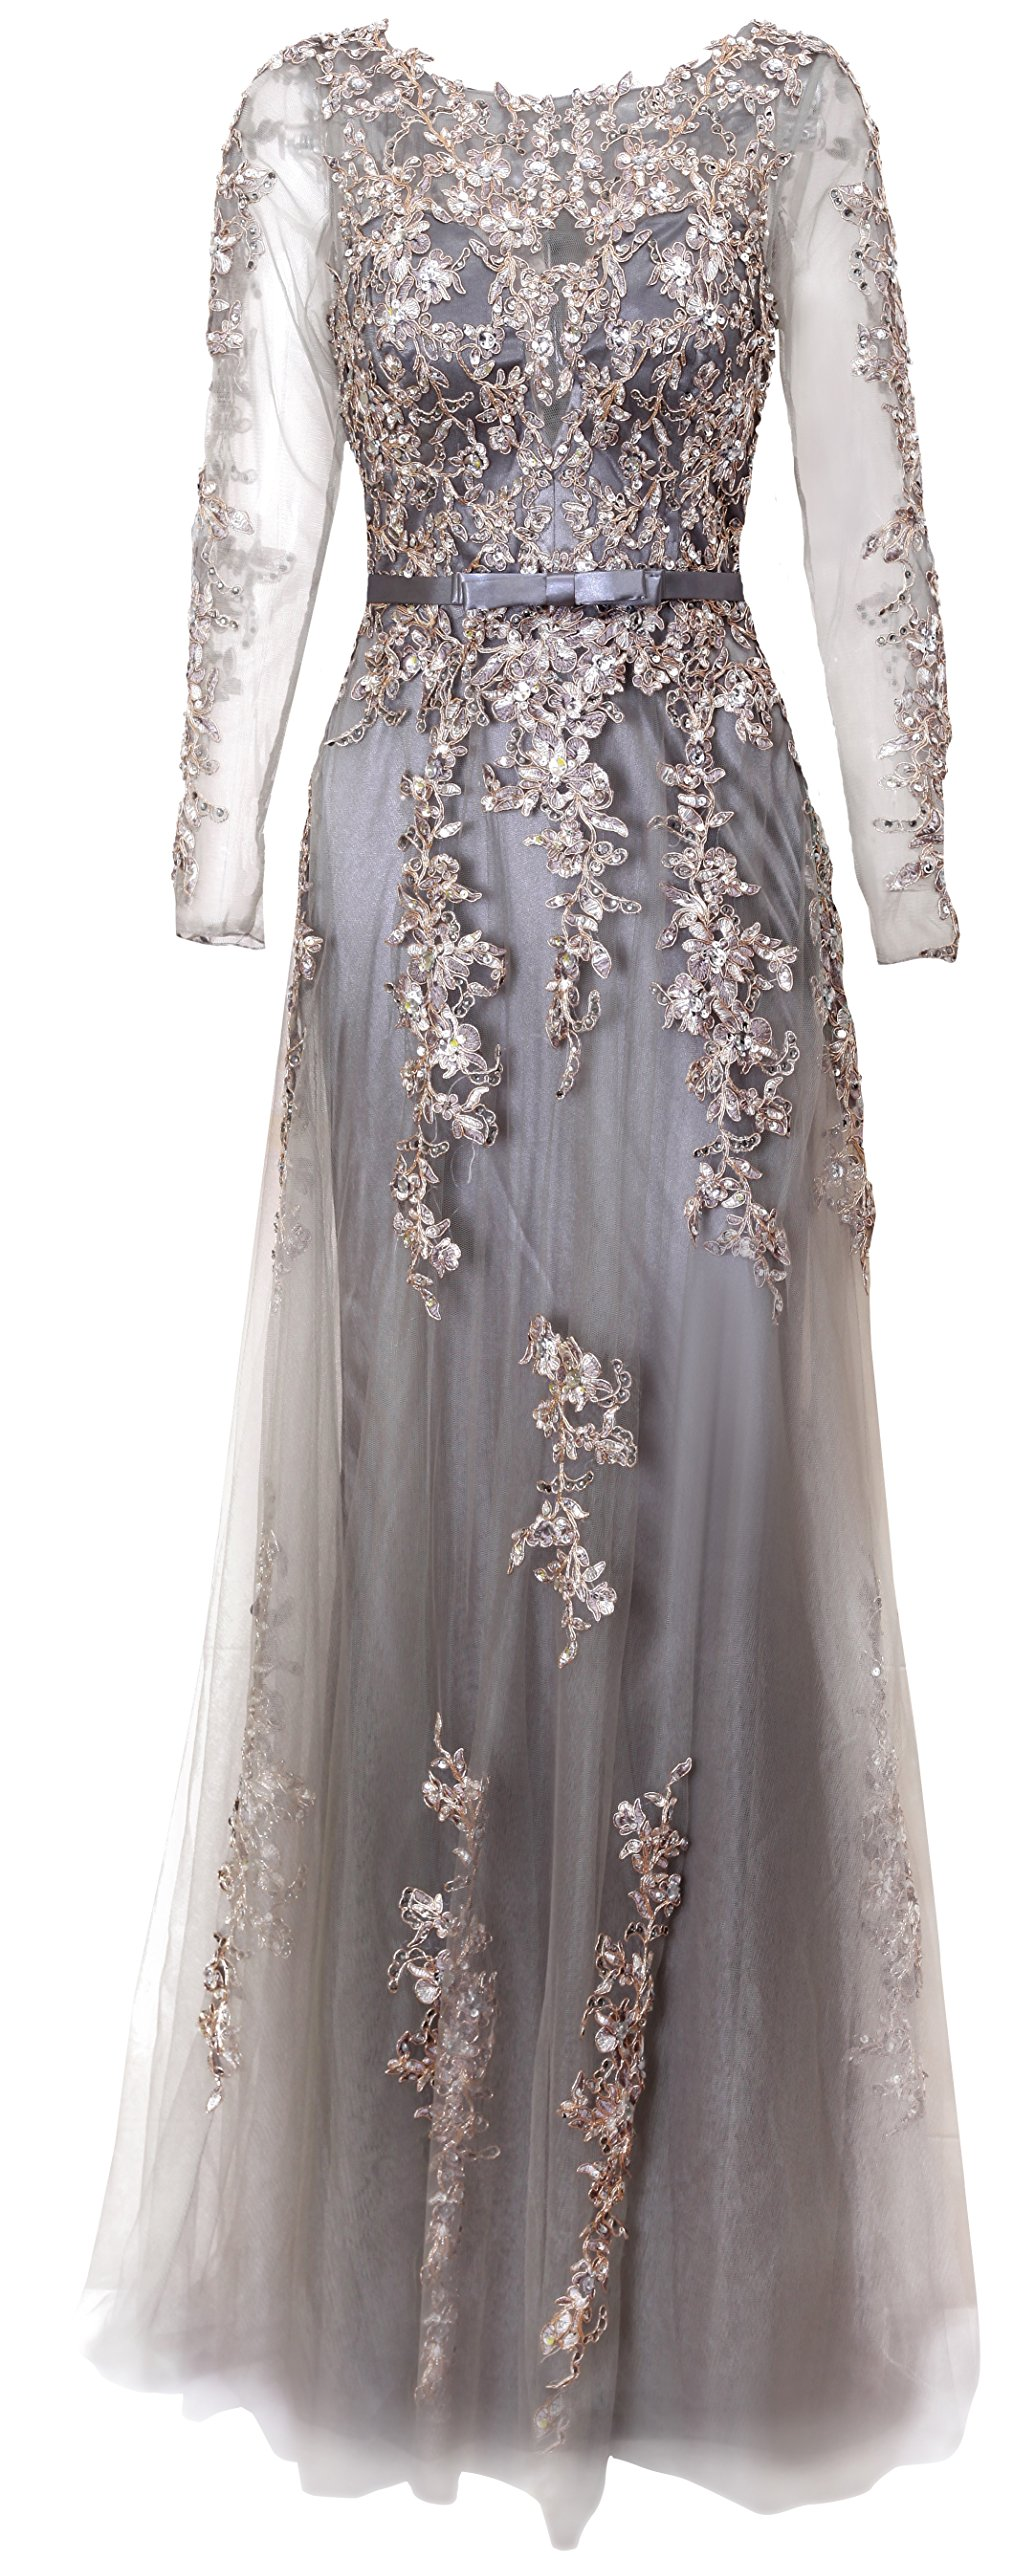 c6778e9d3e Home Brands Mother of the Bride Dresses Meier Women s Illusion Long Sleeve  Embroidery Prom Formal Dress (18